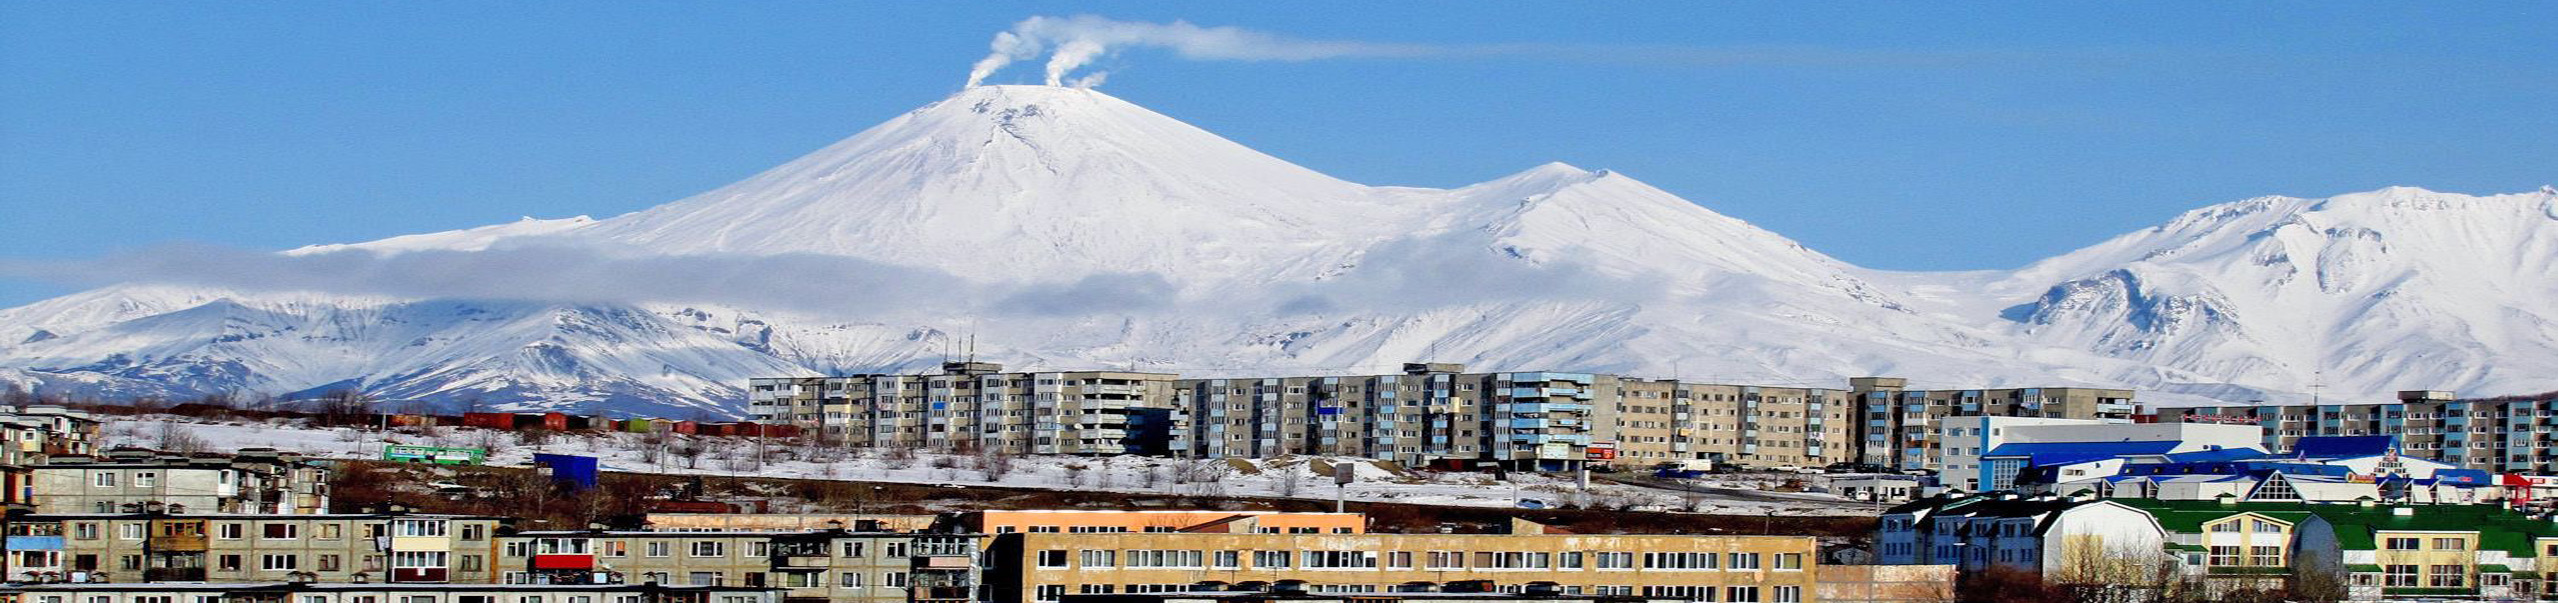 Tours in Kamchatka